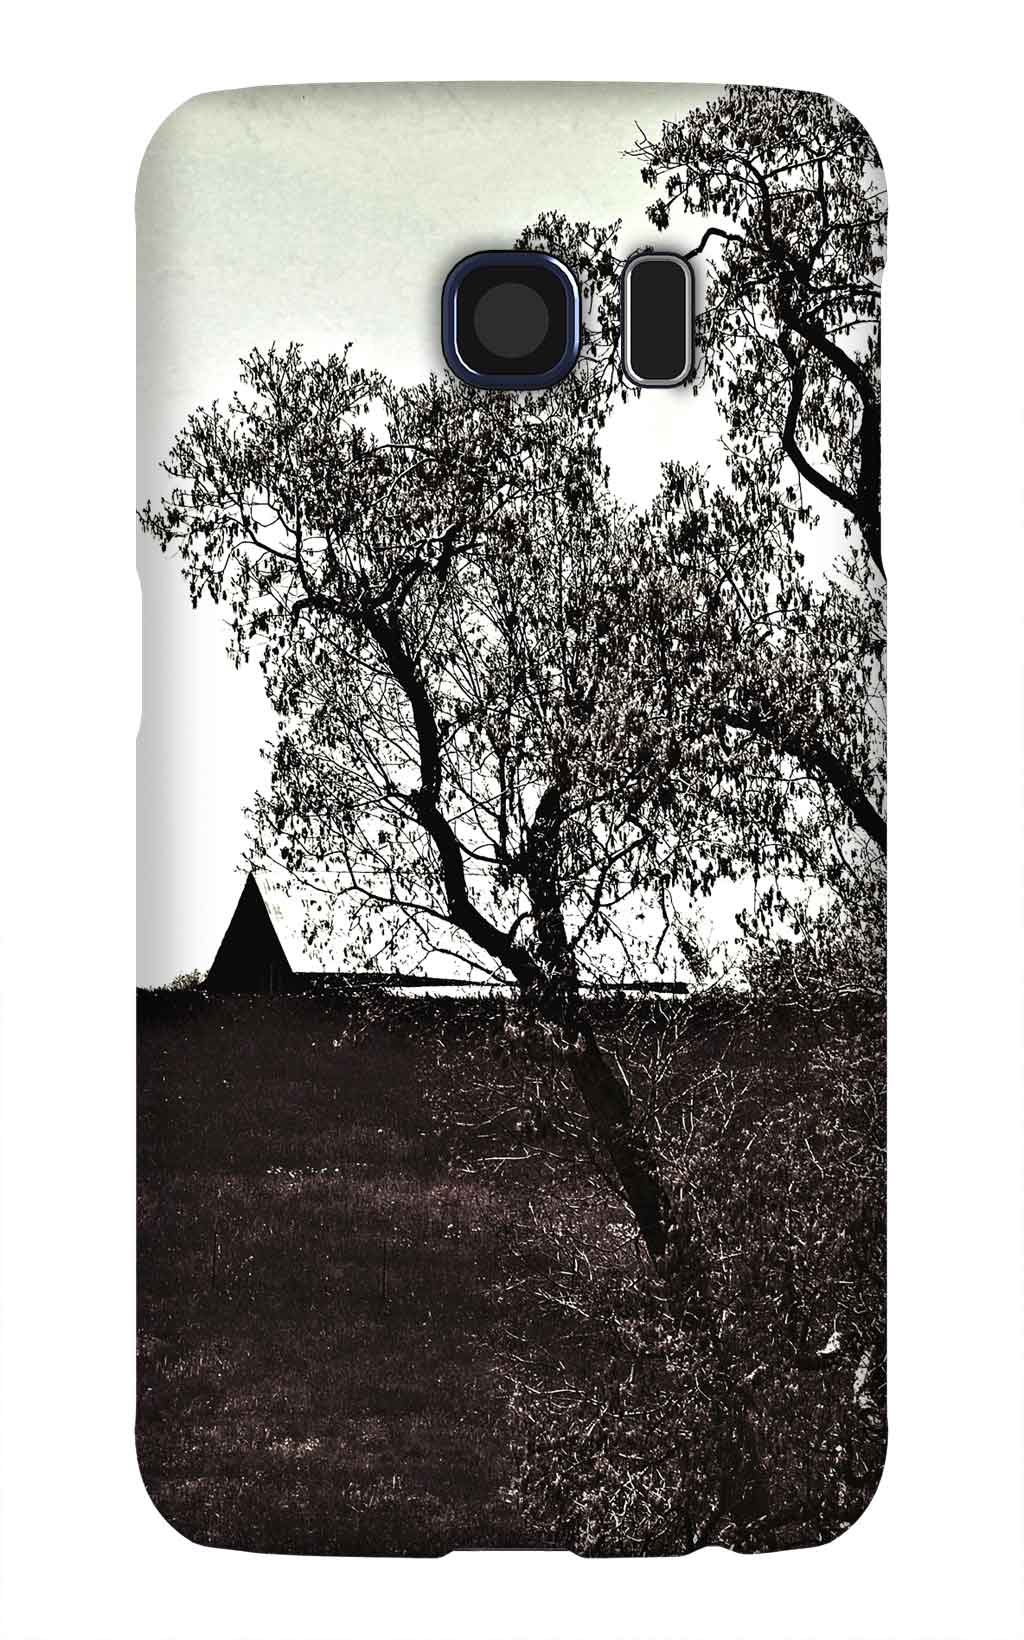 Product, Cellphone Case: Over the Horizon – Barn peeking over a hill, black and white, Red Boiling Springs, Tennessee